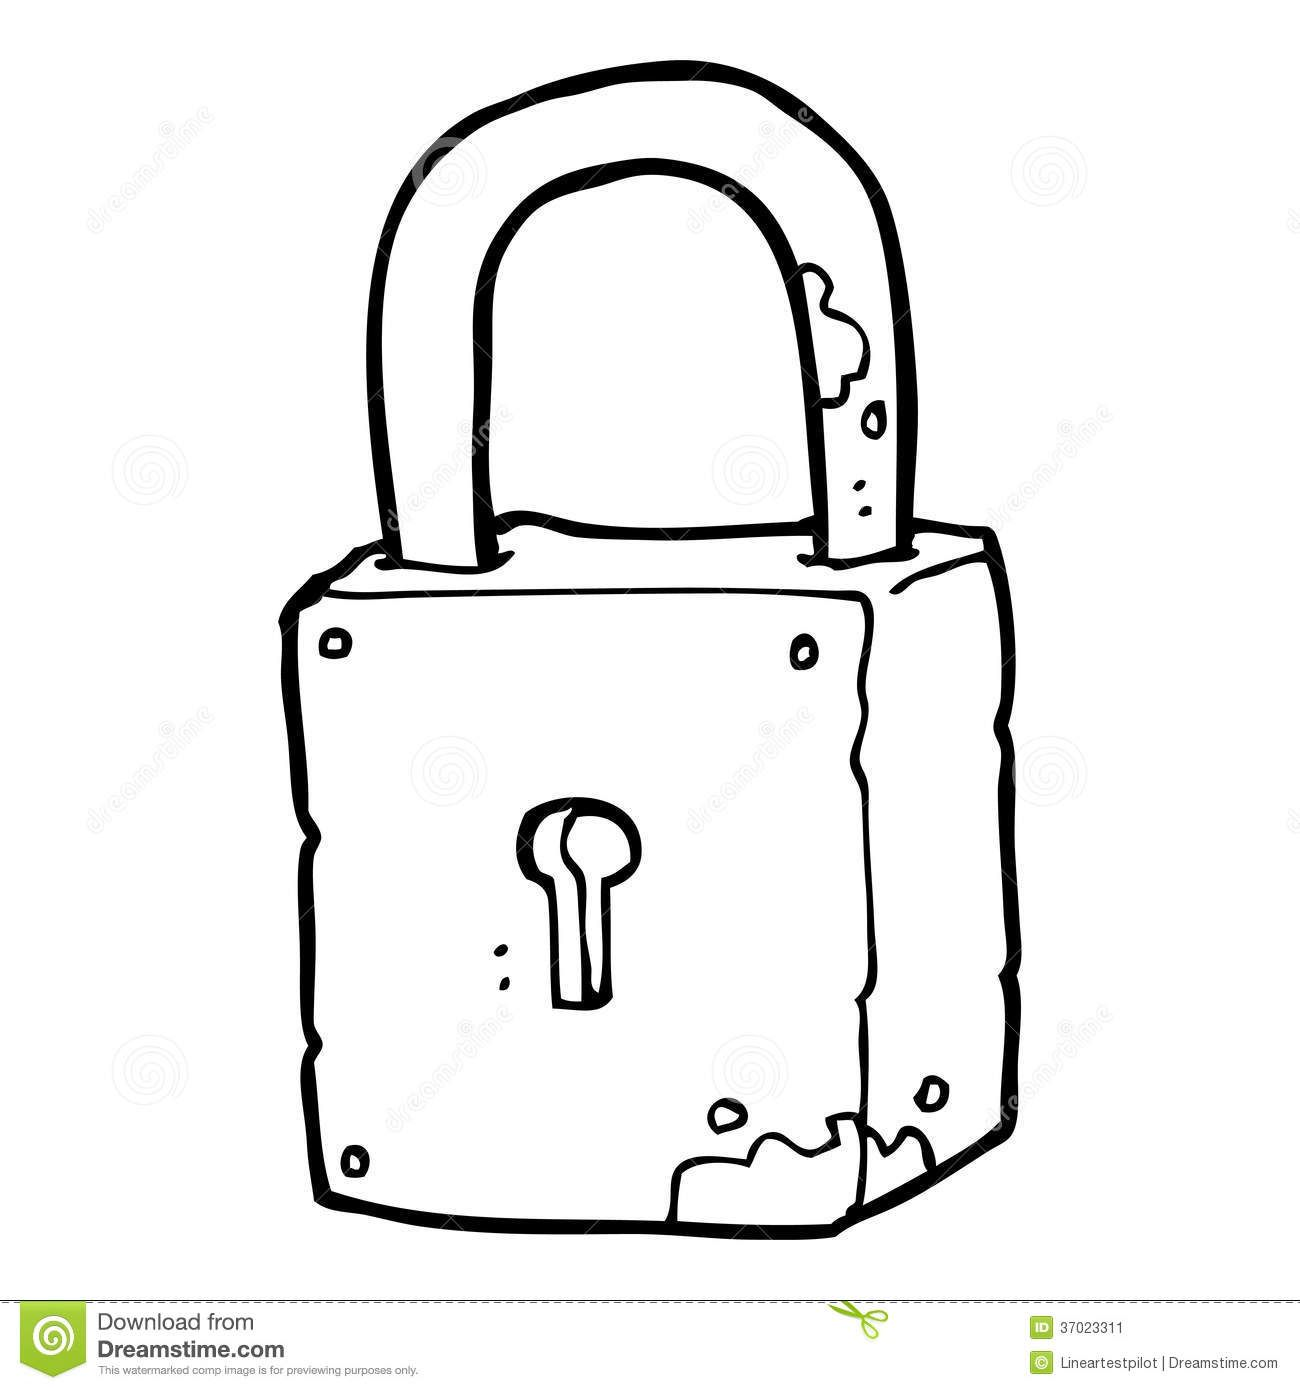 Lock Clipart Black And White.